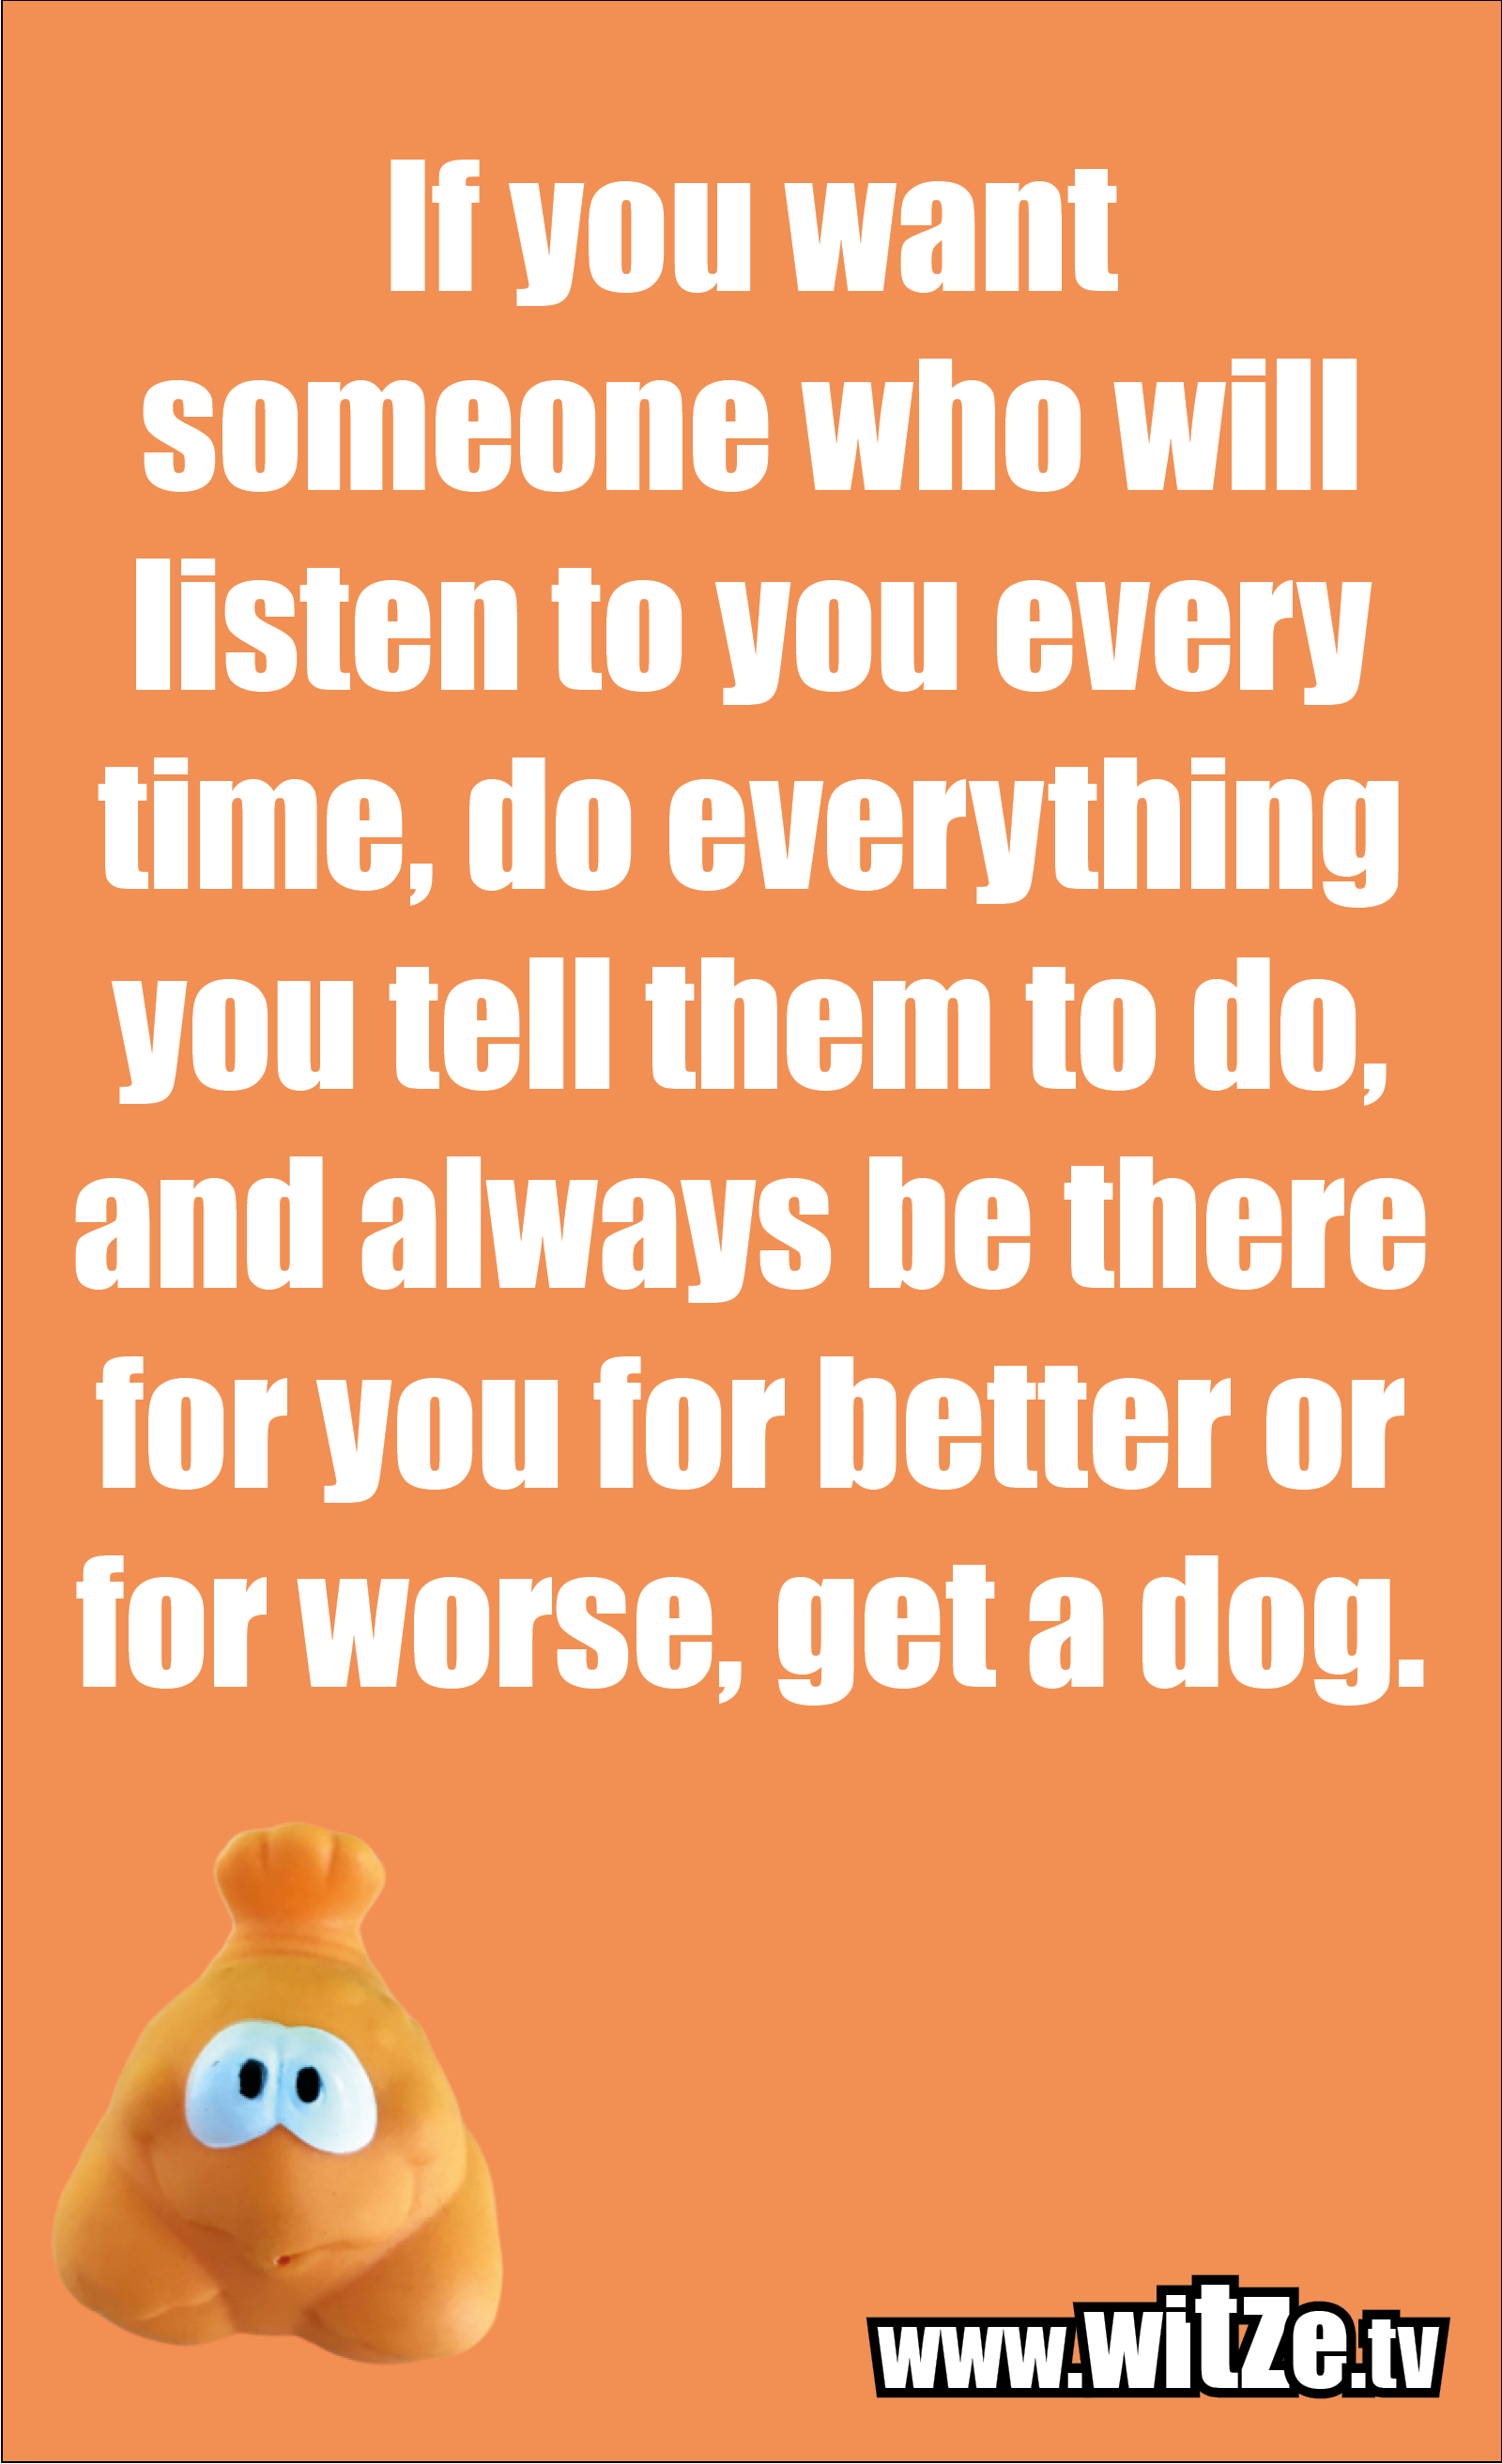 Funny sayings… If you want someone who will listen to you every time, do everything you tell them to do, and always be there for you for better or for worse, get a dog.